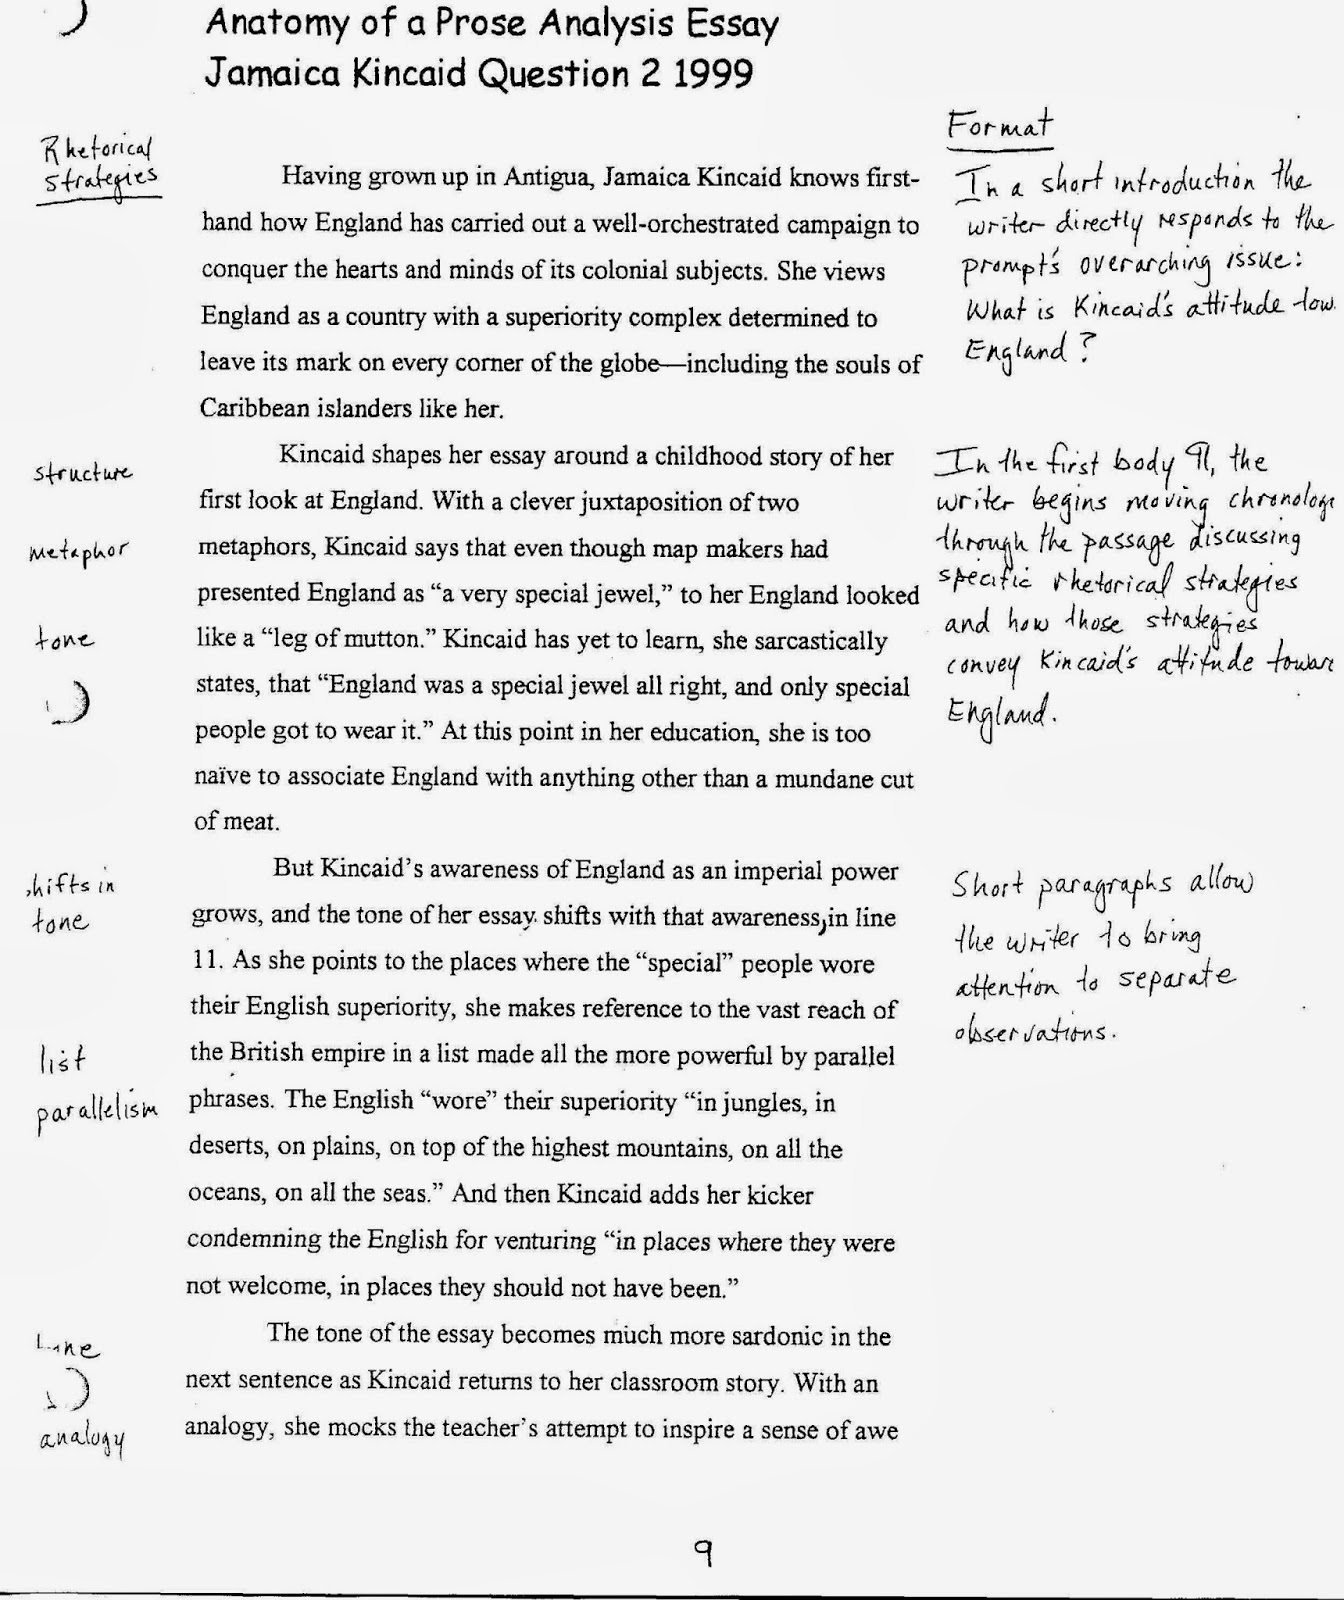 analogy essay sample analysis essay example topics how to write a  template for writing an analytical essay example essays resume format pdf example essays resume format pdf